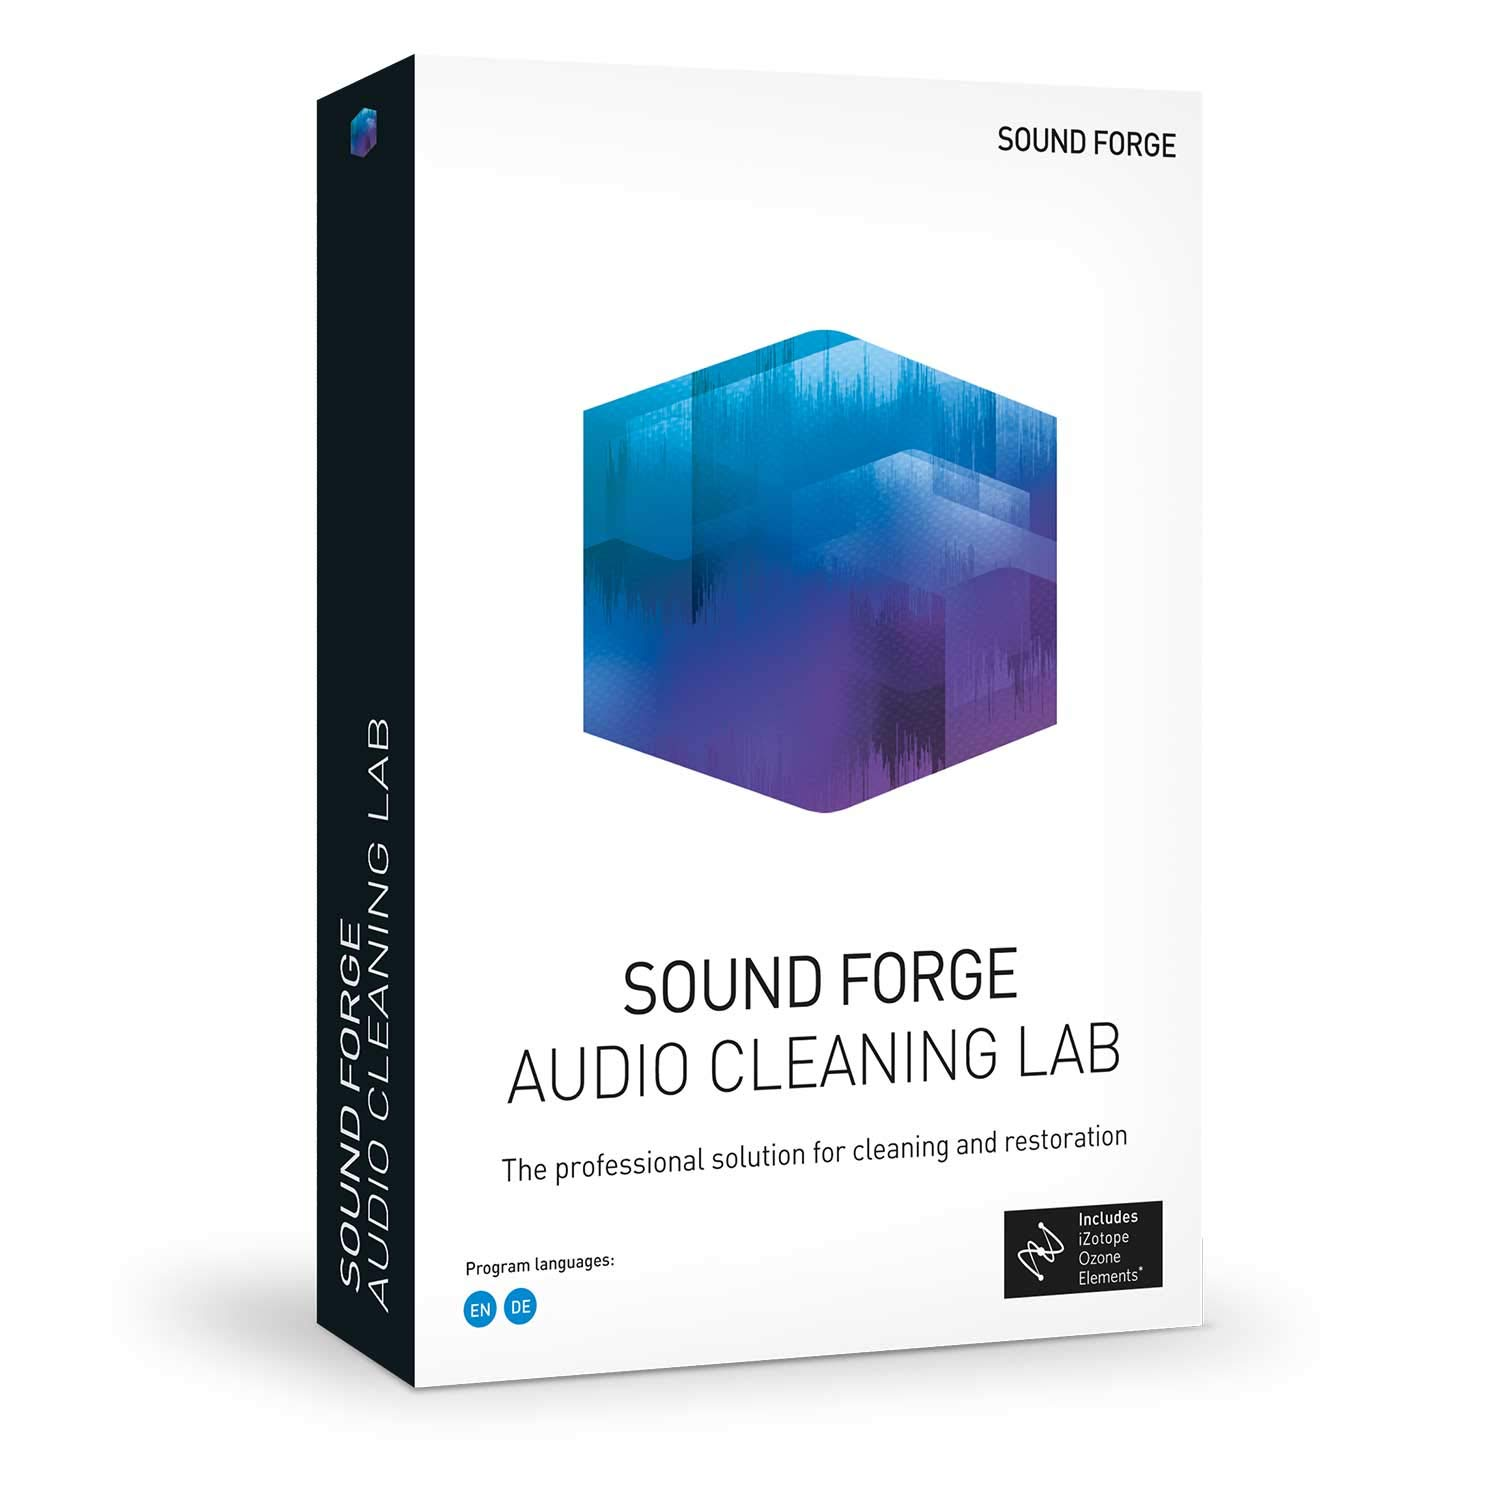 Sound Forge Audio Cleaning Lab - the Specialist Tool